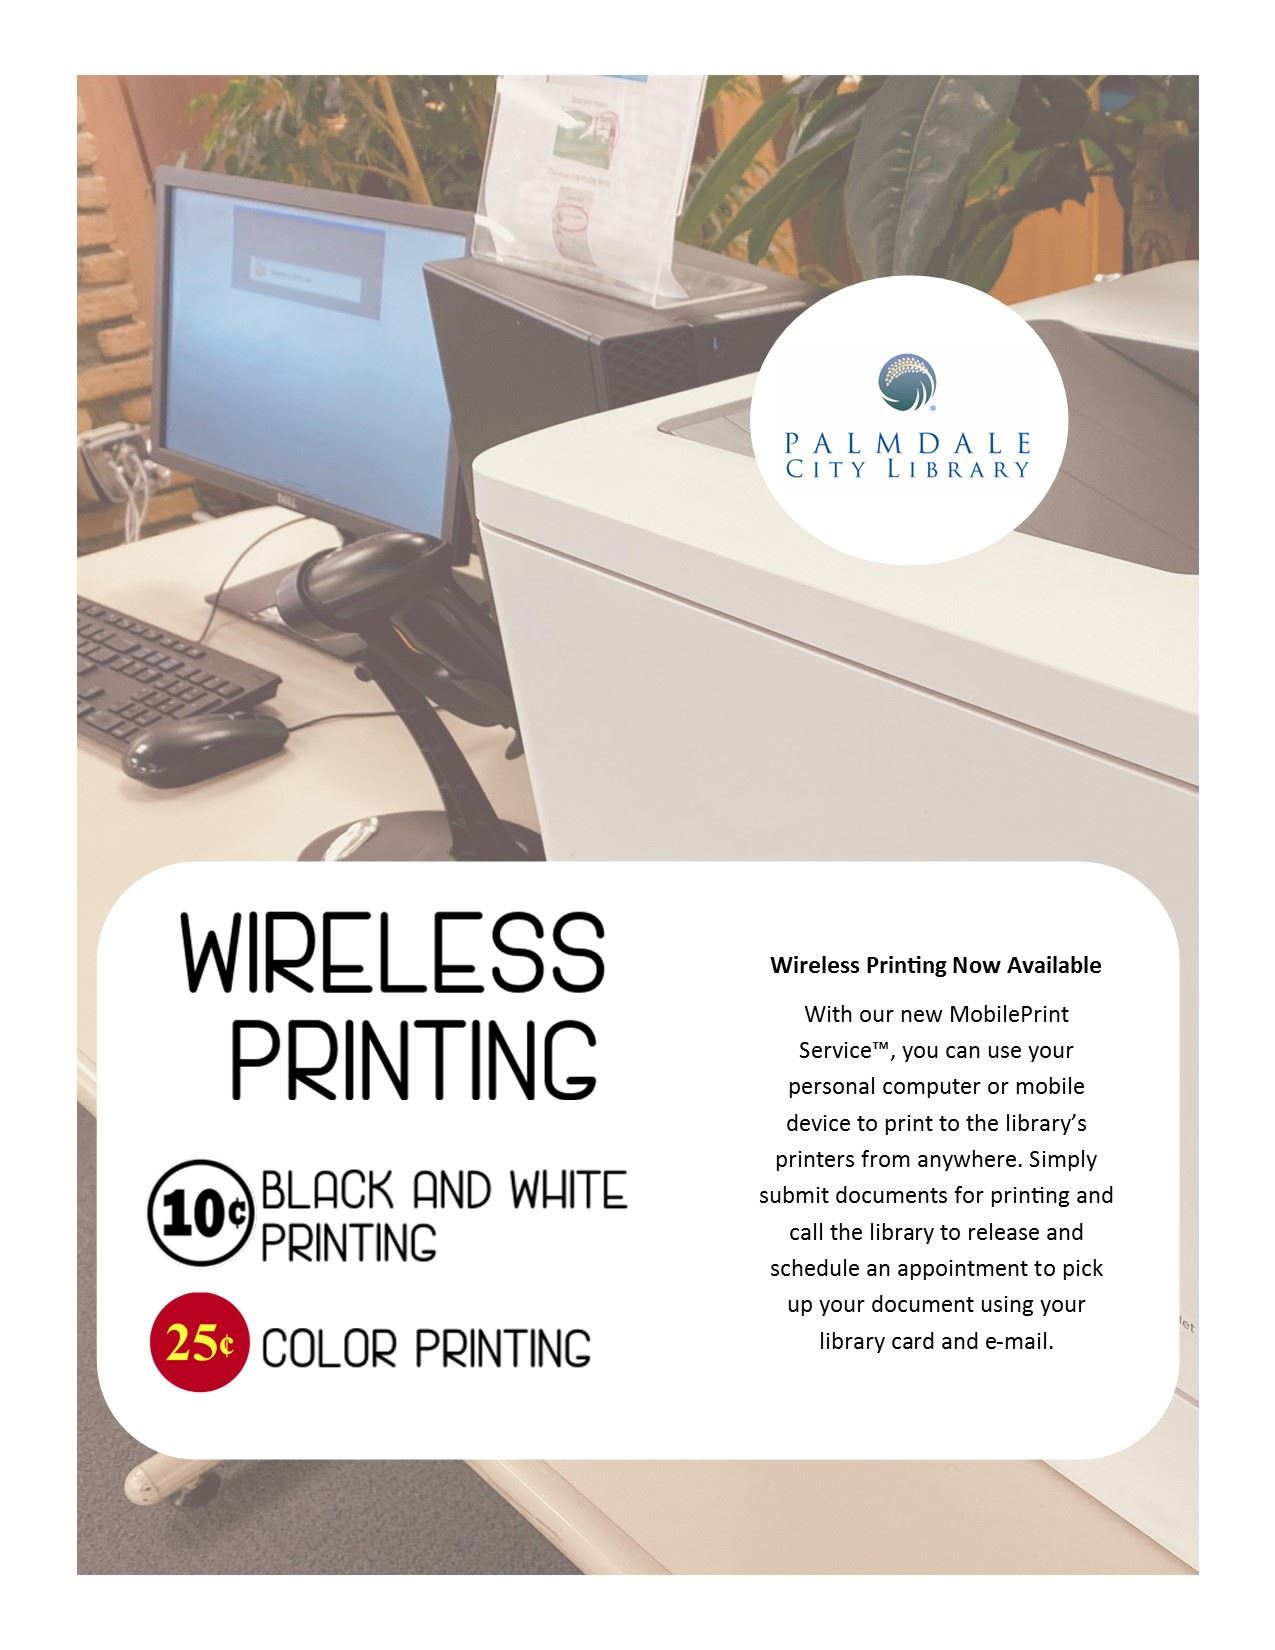 wireless printing now available call the library to schedule appointment for pick up